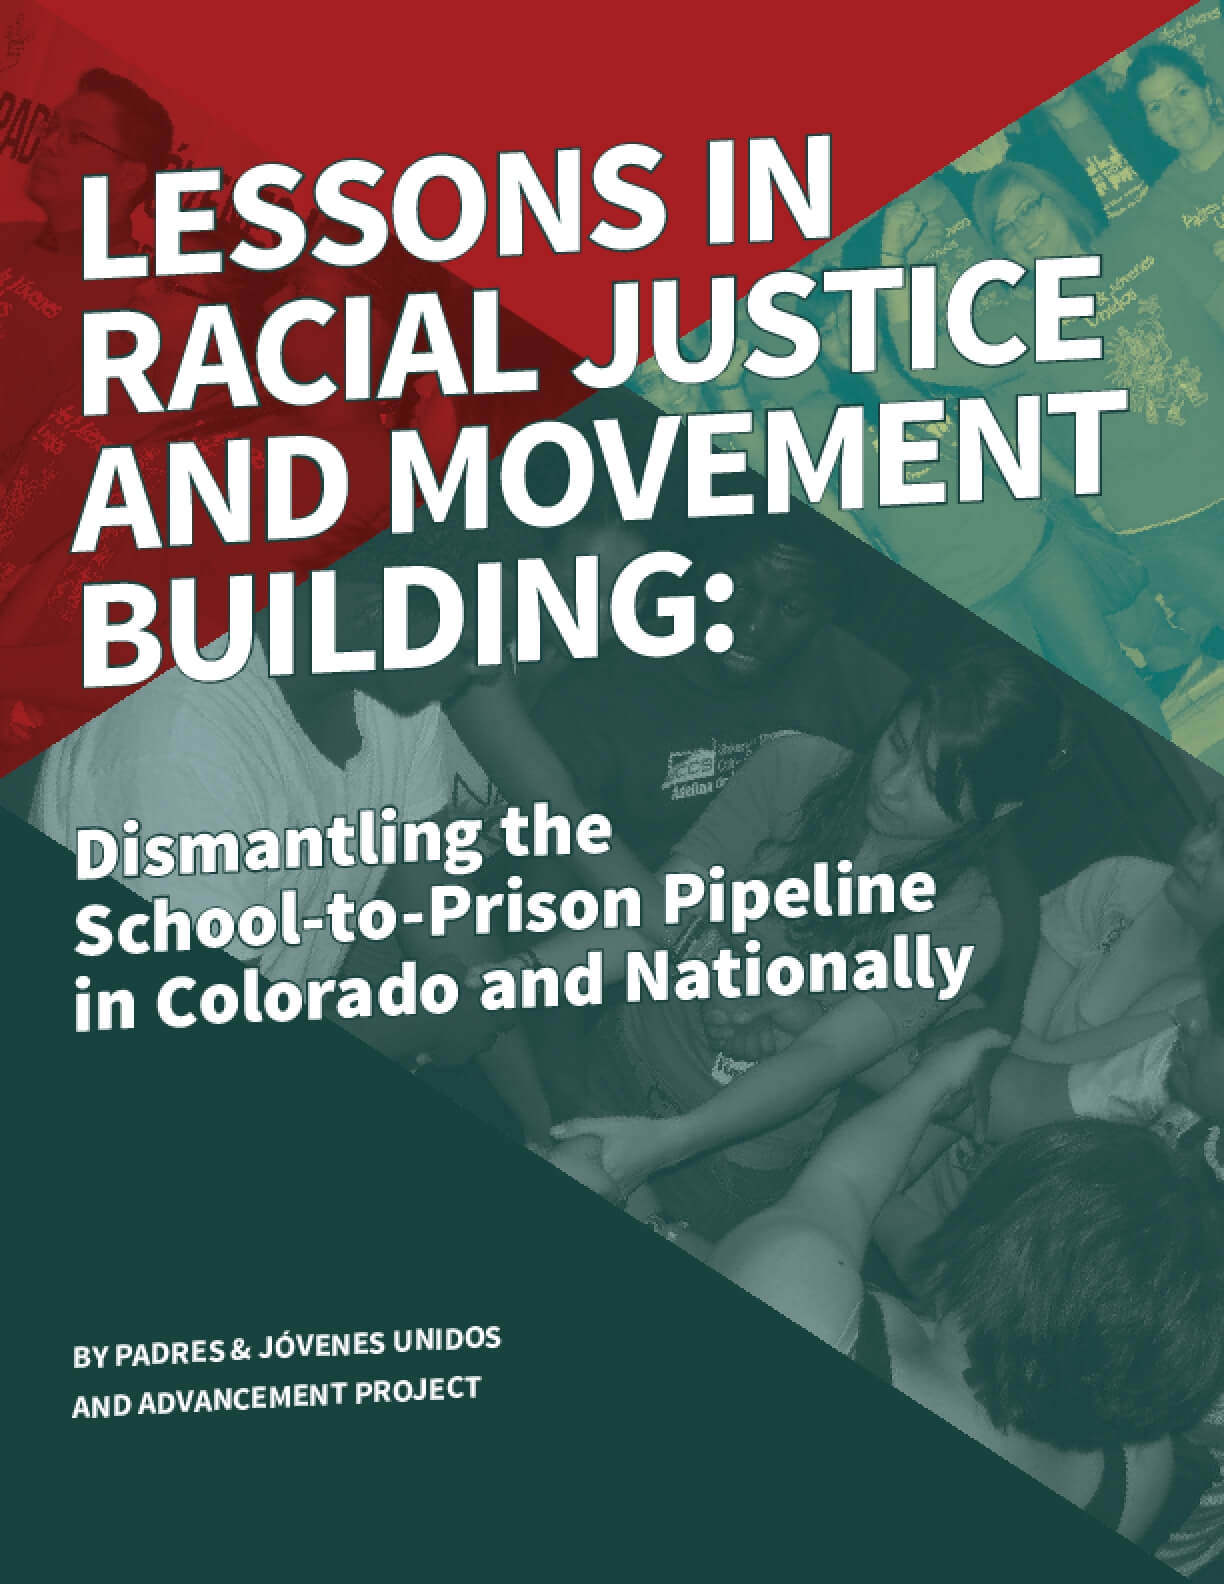 Lessons in Racial Justice and Movement Building: Dismantling the School-to-Prison Pipeline in Colorado and Nationally